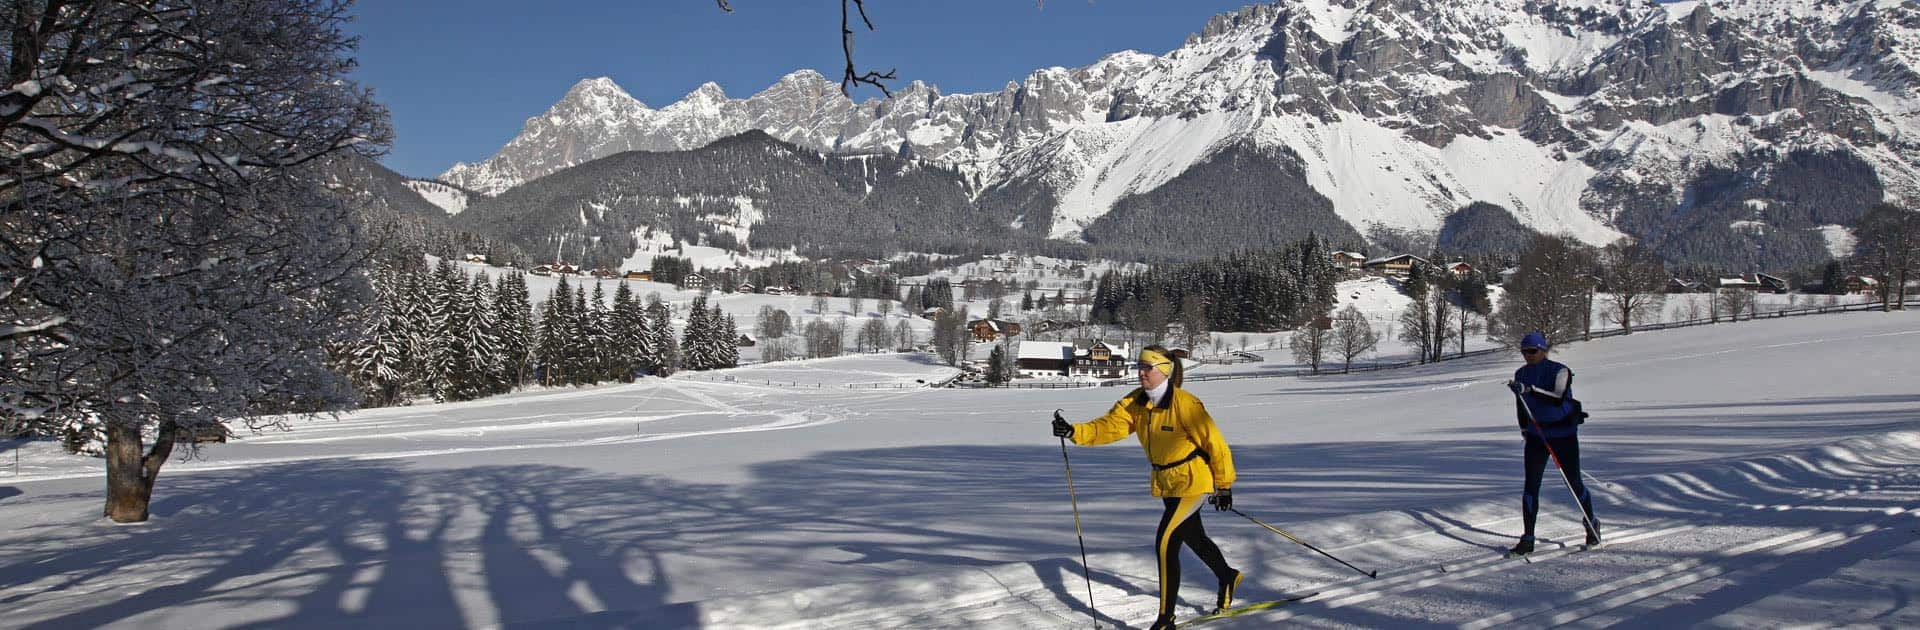 cross country paradise with 220km of groomed trails